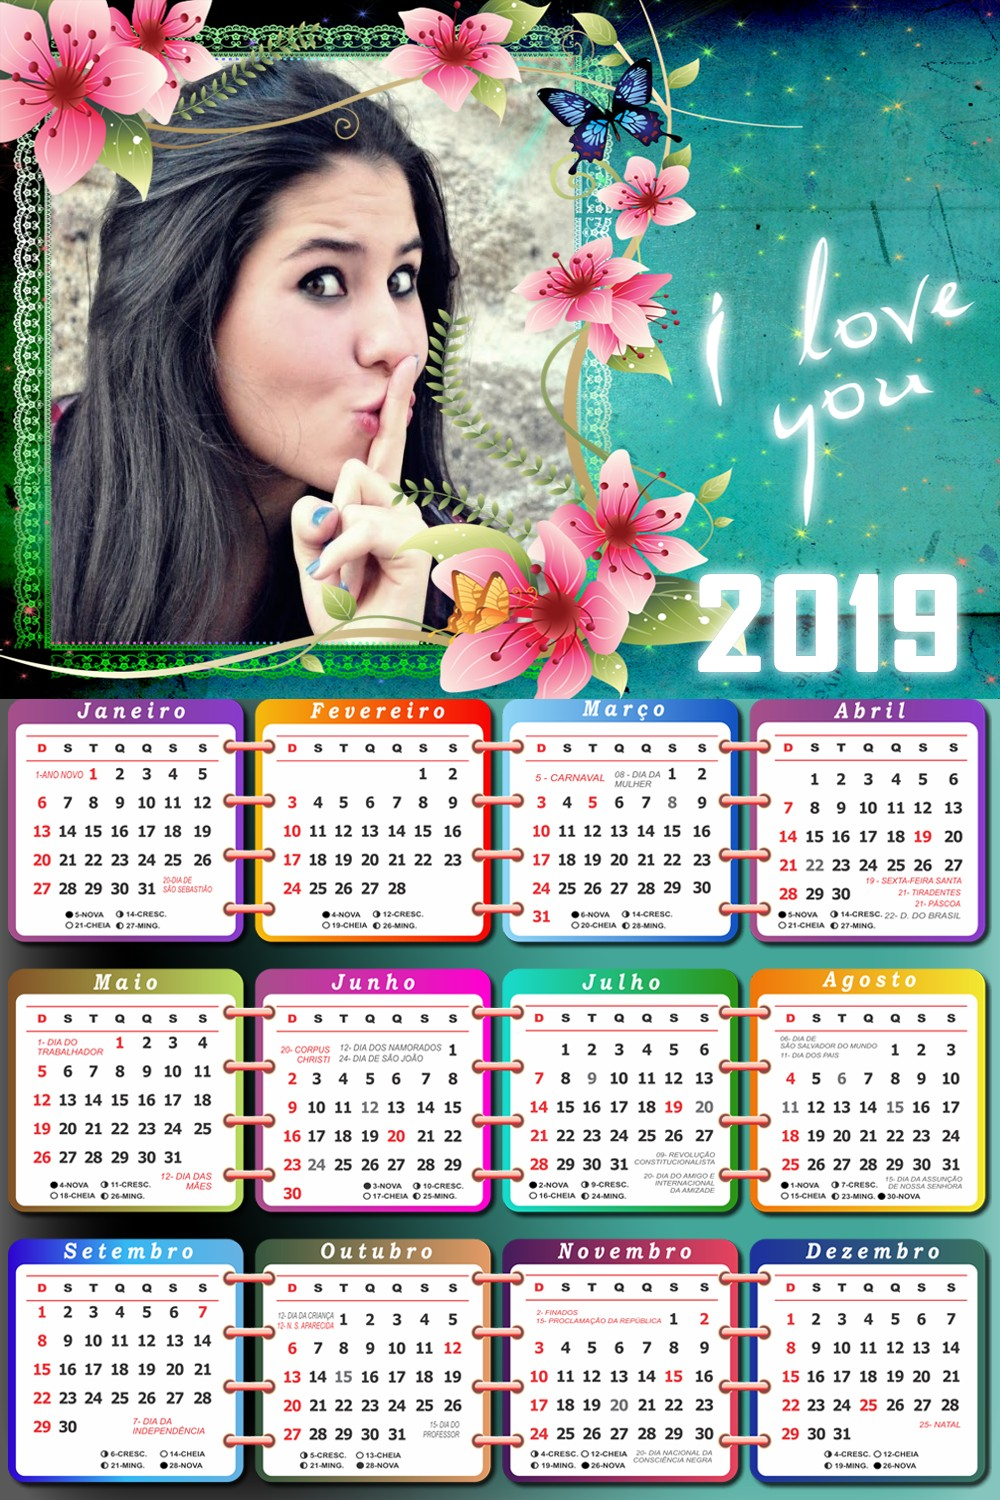 calendario-online-2019-com-flores-i-love-you